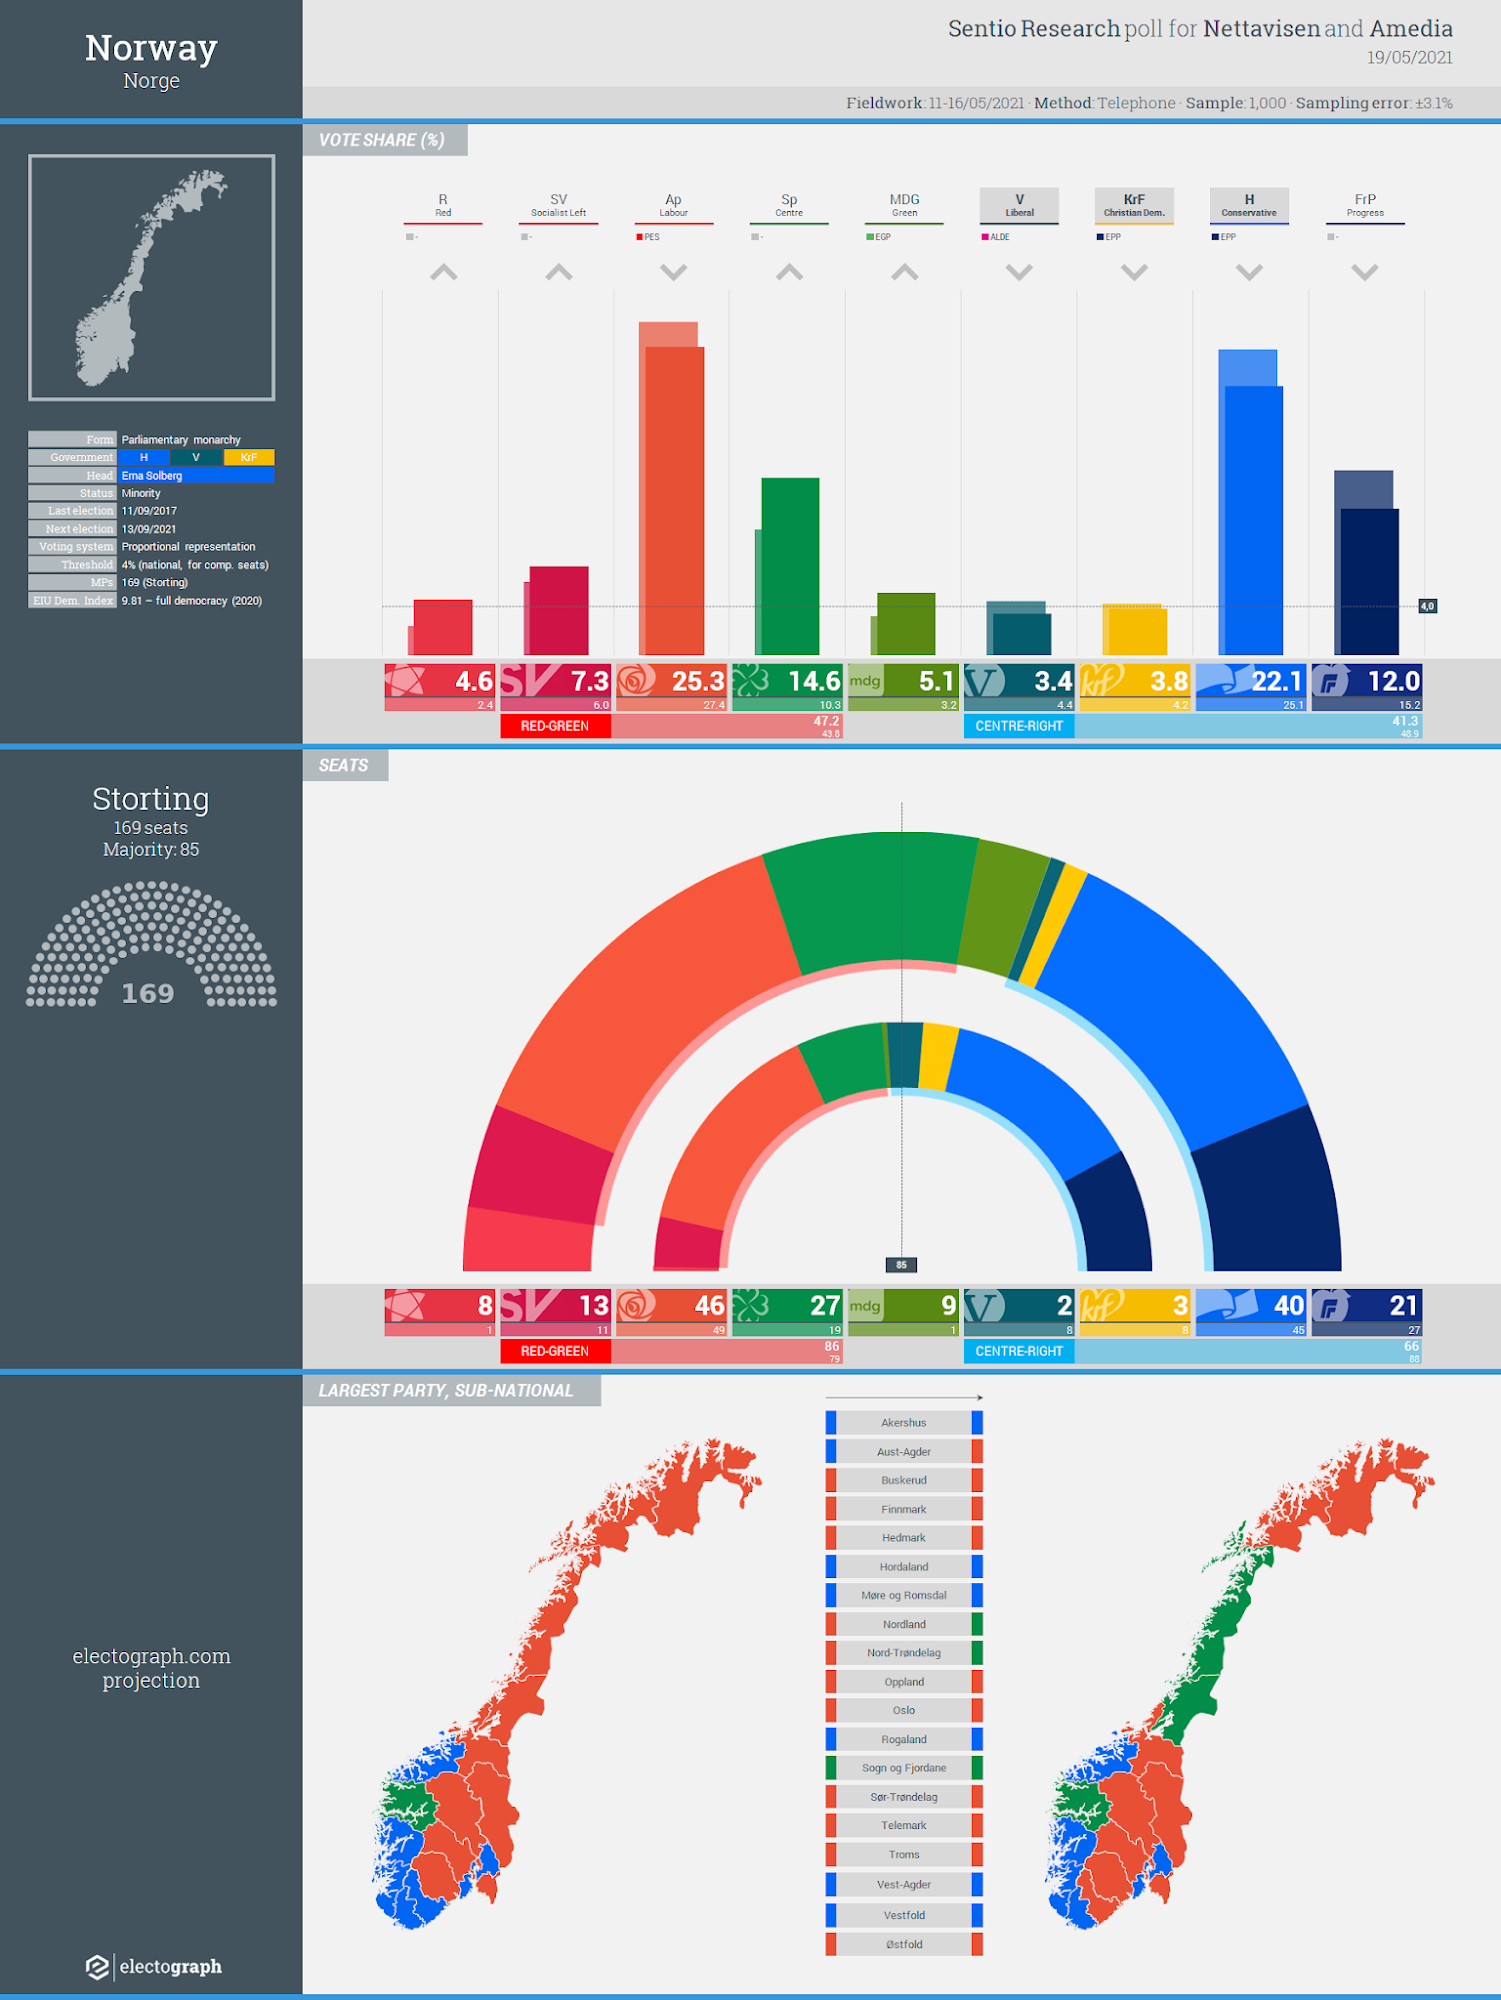 NORWAY: Sentio Research poll chart for Nettavisen and Amedia, 19 May 2021